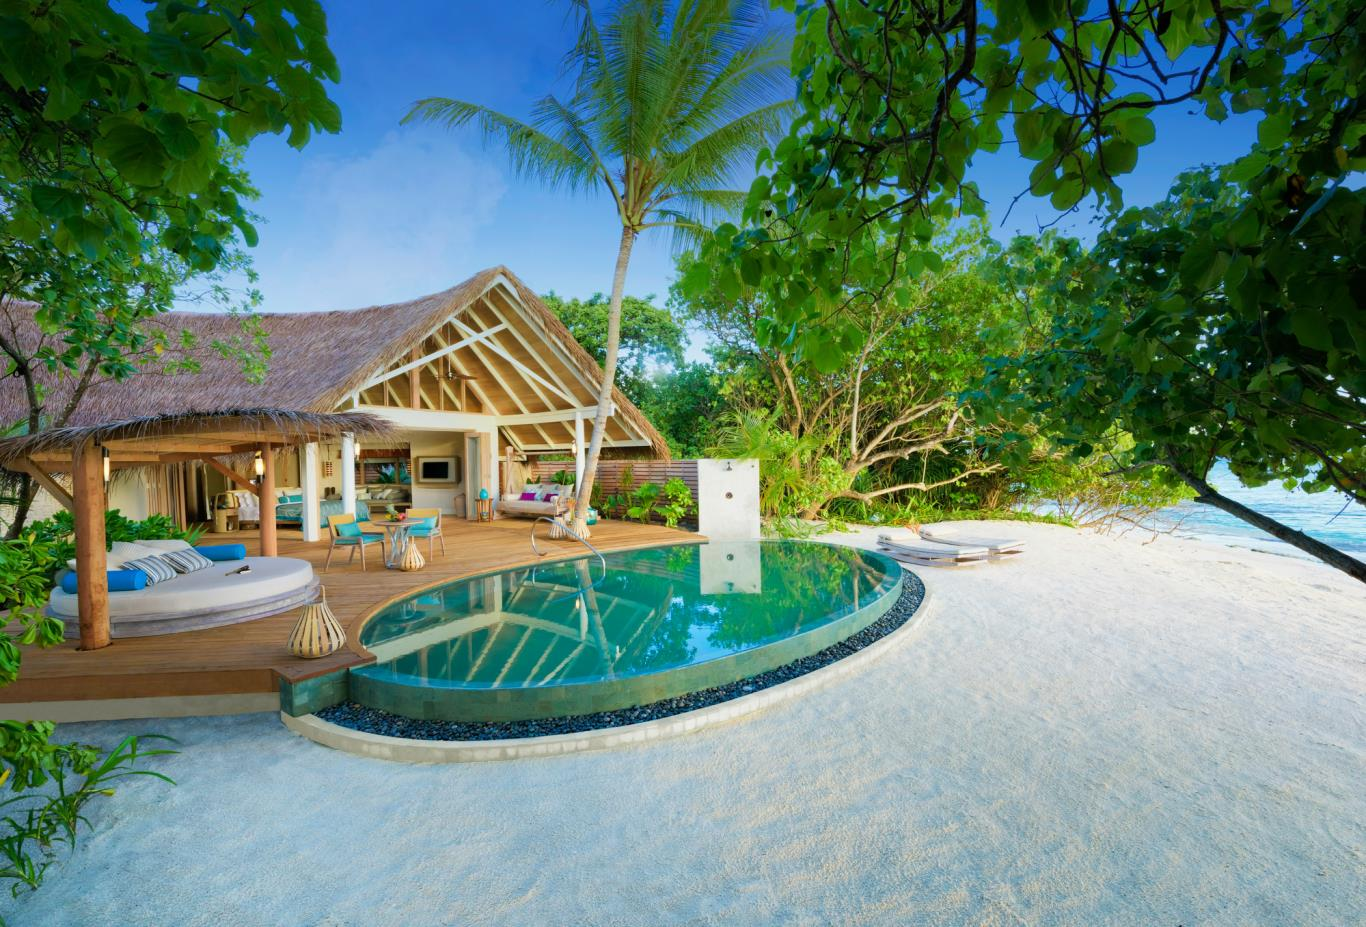 Beach pool villa pool